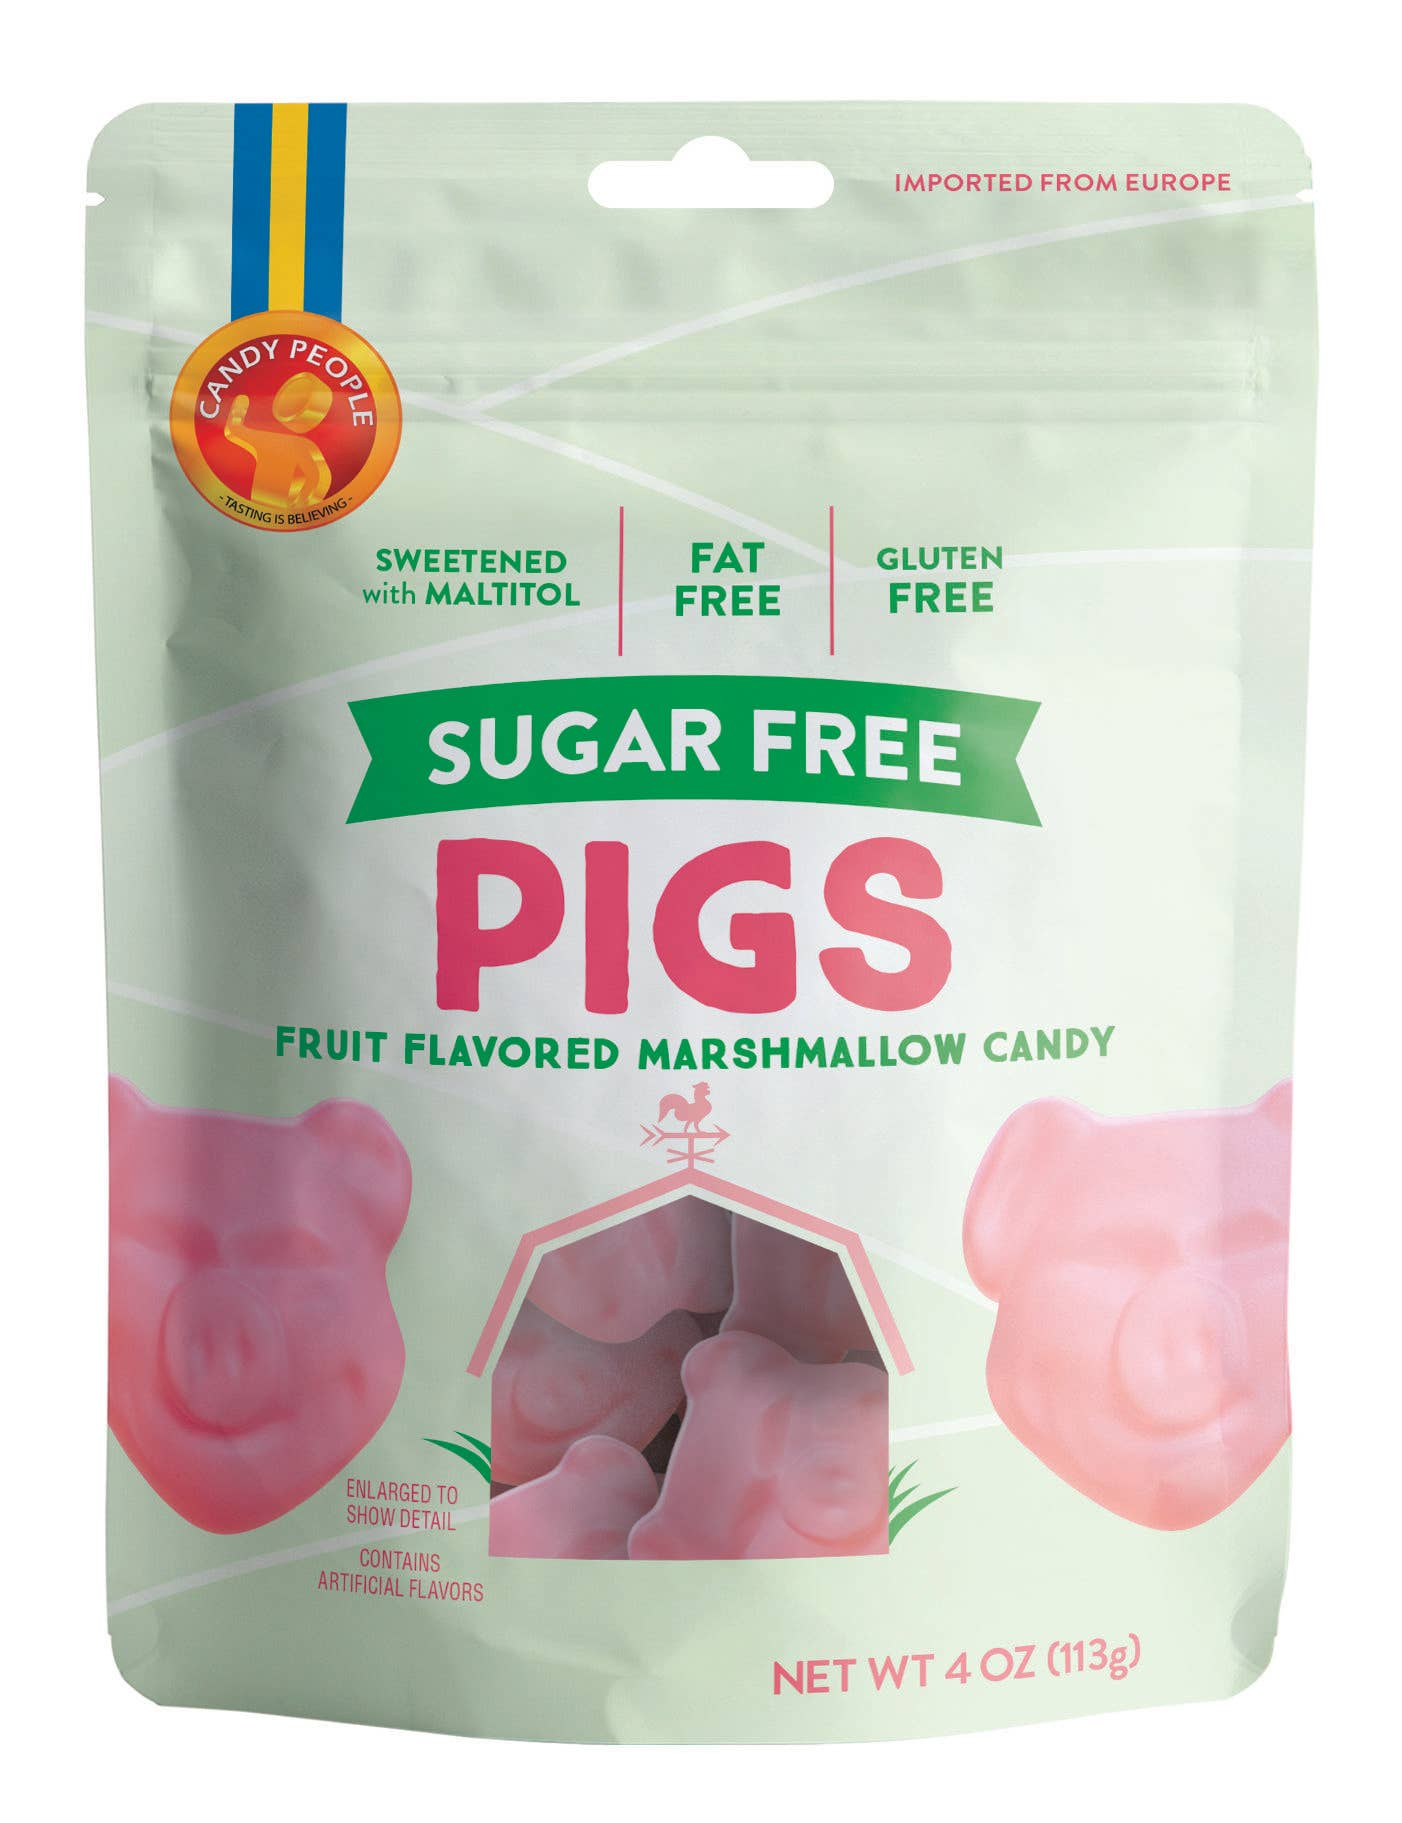 Candy People USA - Sugar Free Pigs Marshmallow Candy